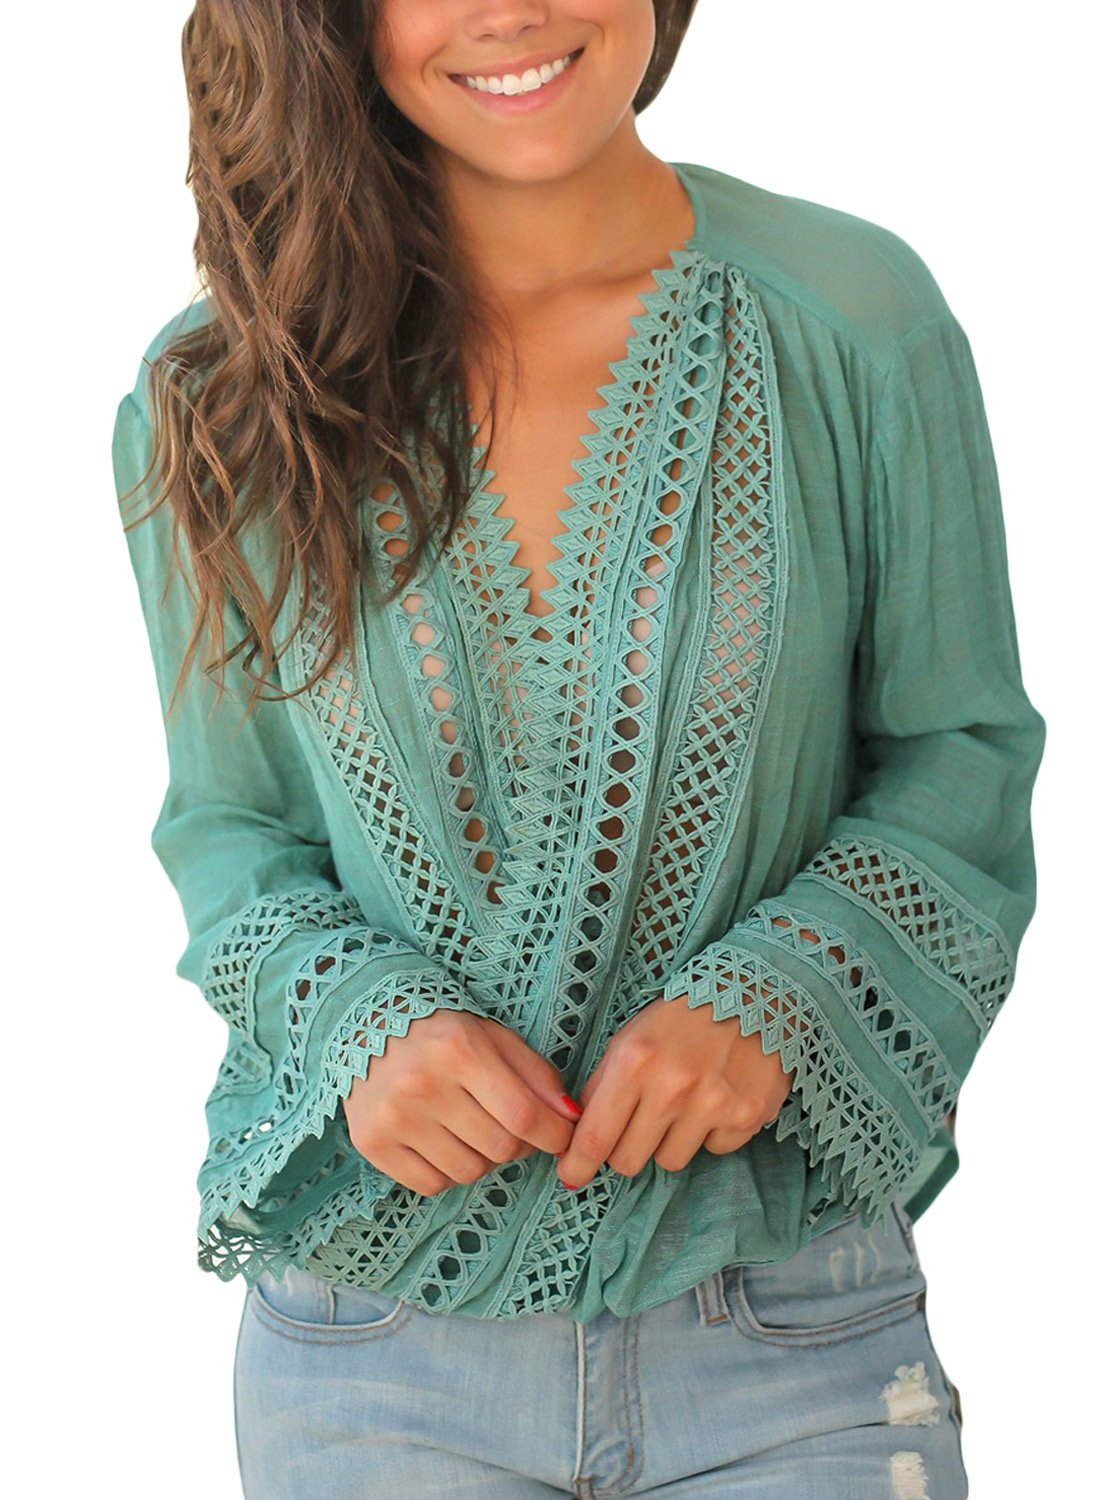 FARYSAYS Women's Casual Crochet V Neck Hollow Out Long Bell Sleeve T Shirt Tops Blouse Green X-Large by FARYSAYS (Image #1)